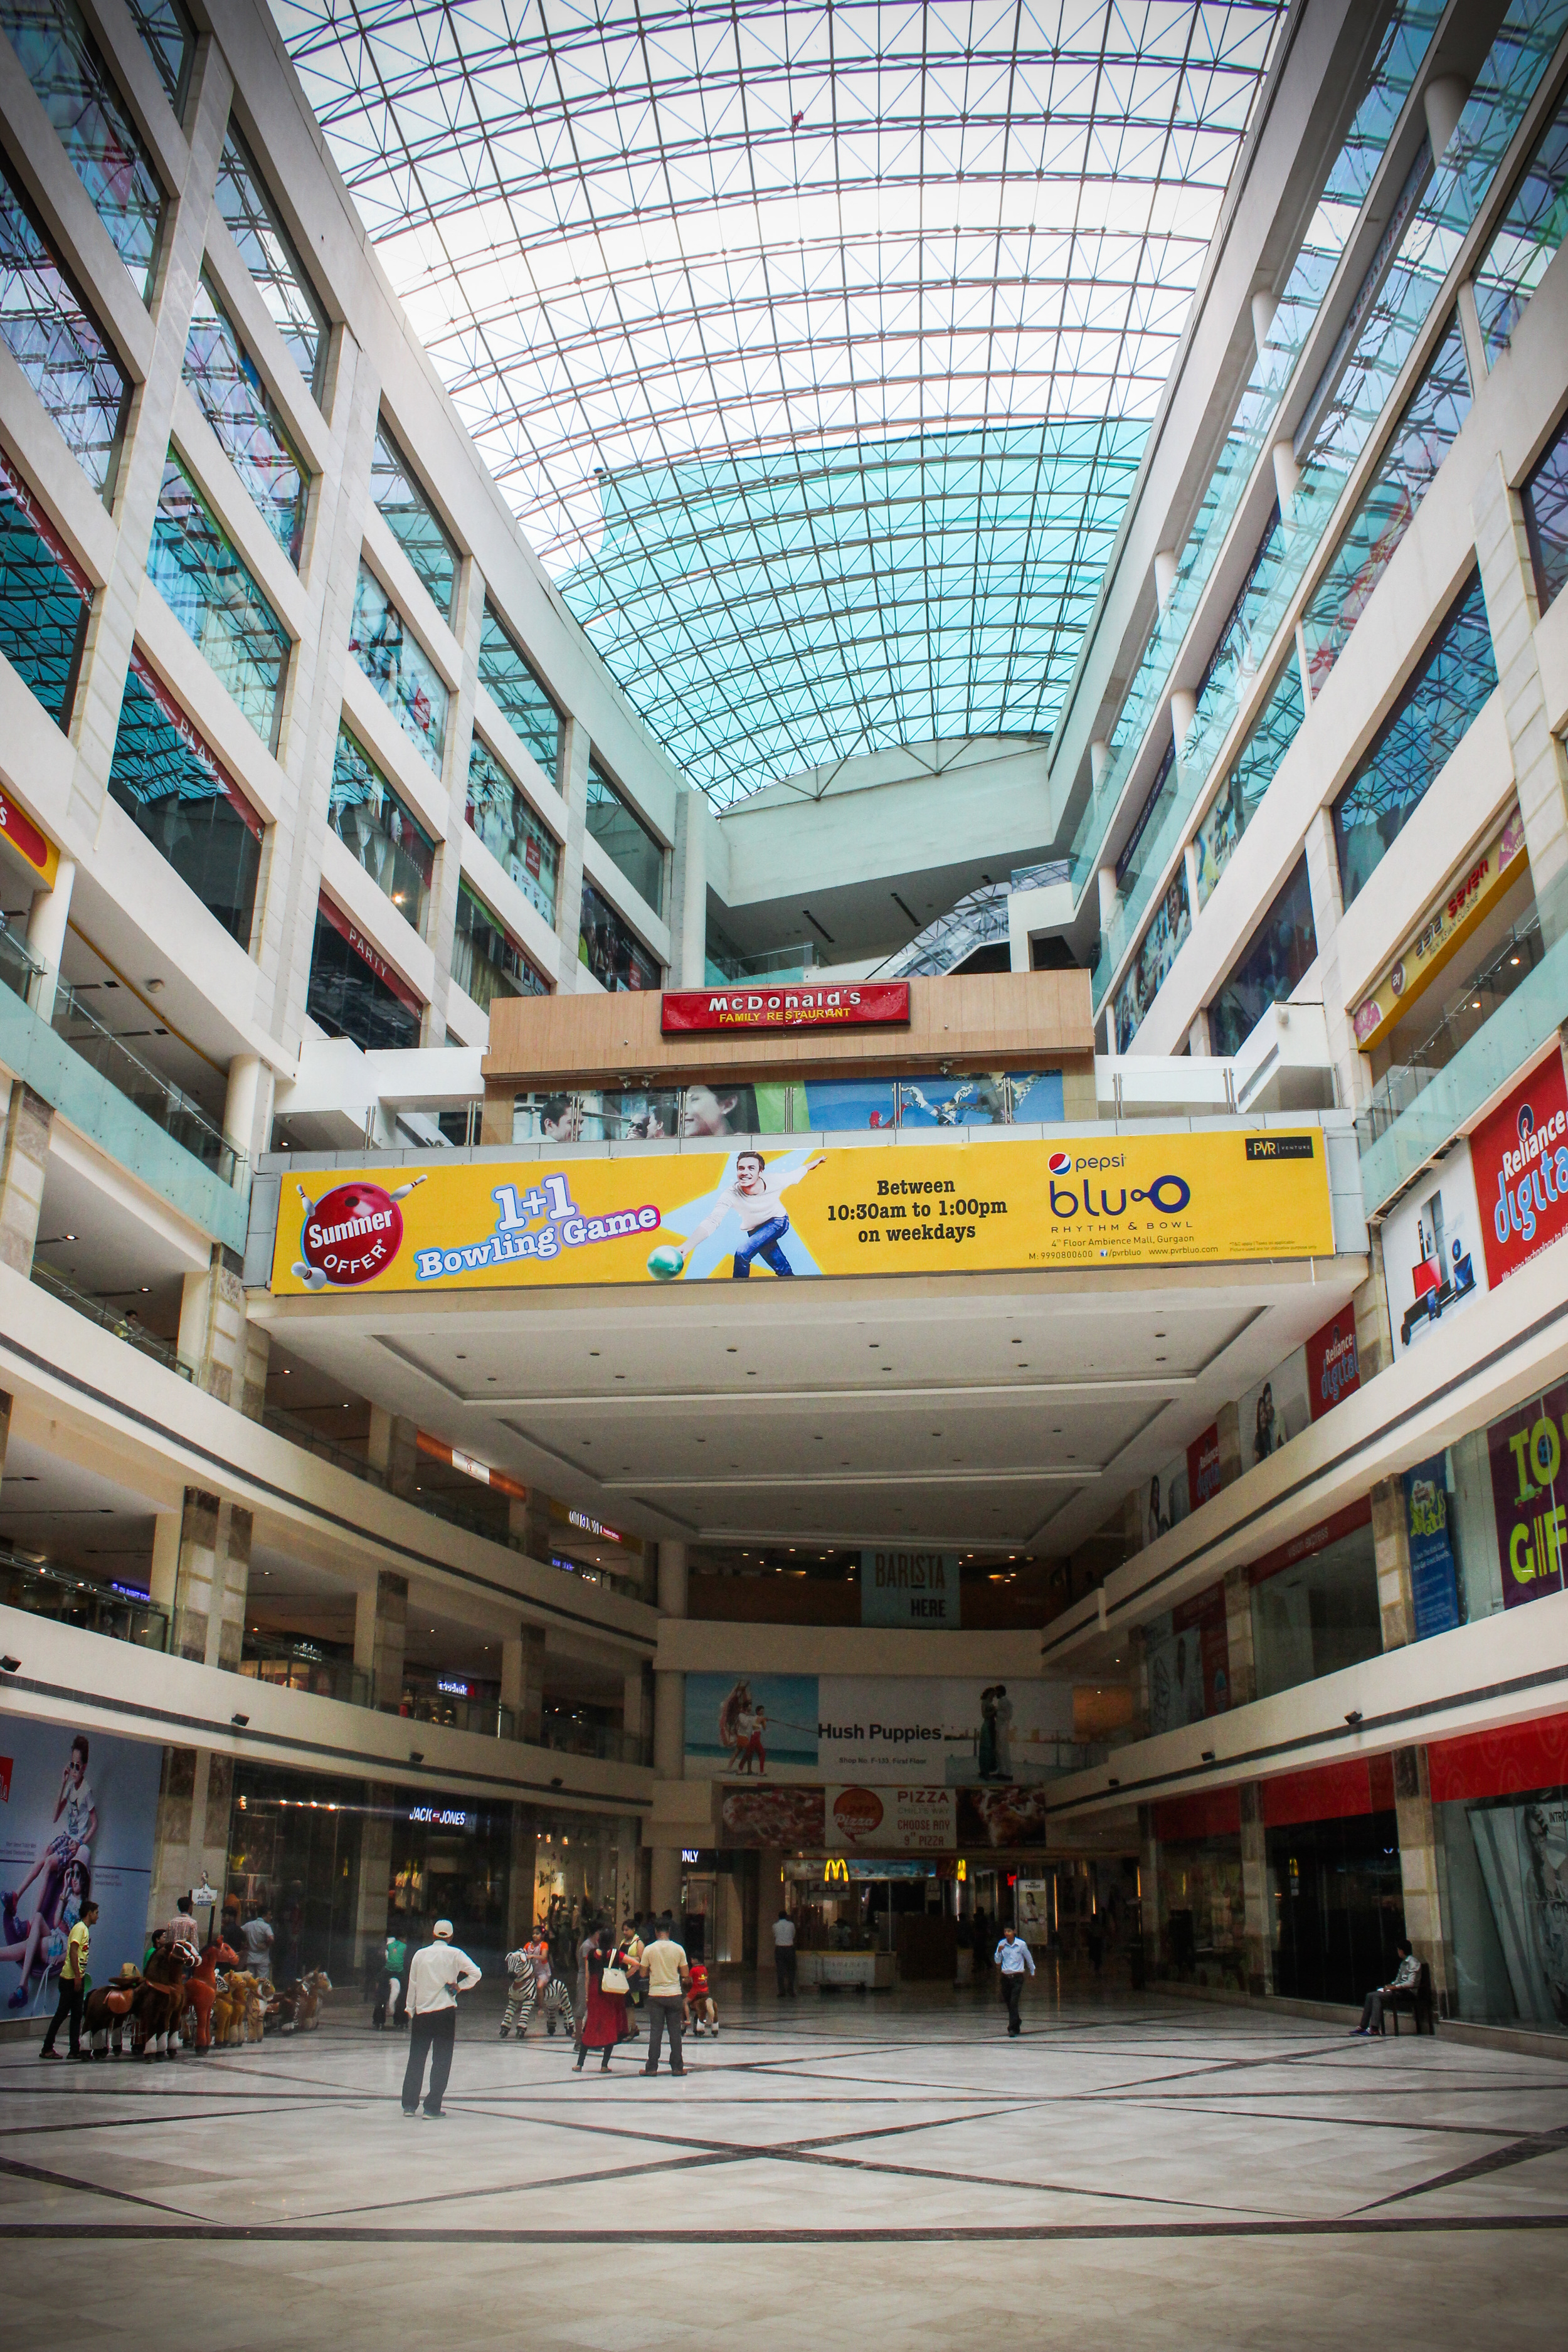 The 8-Story Ambiance Mall in Gurgaon, India.